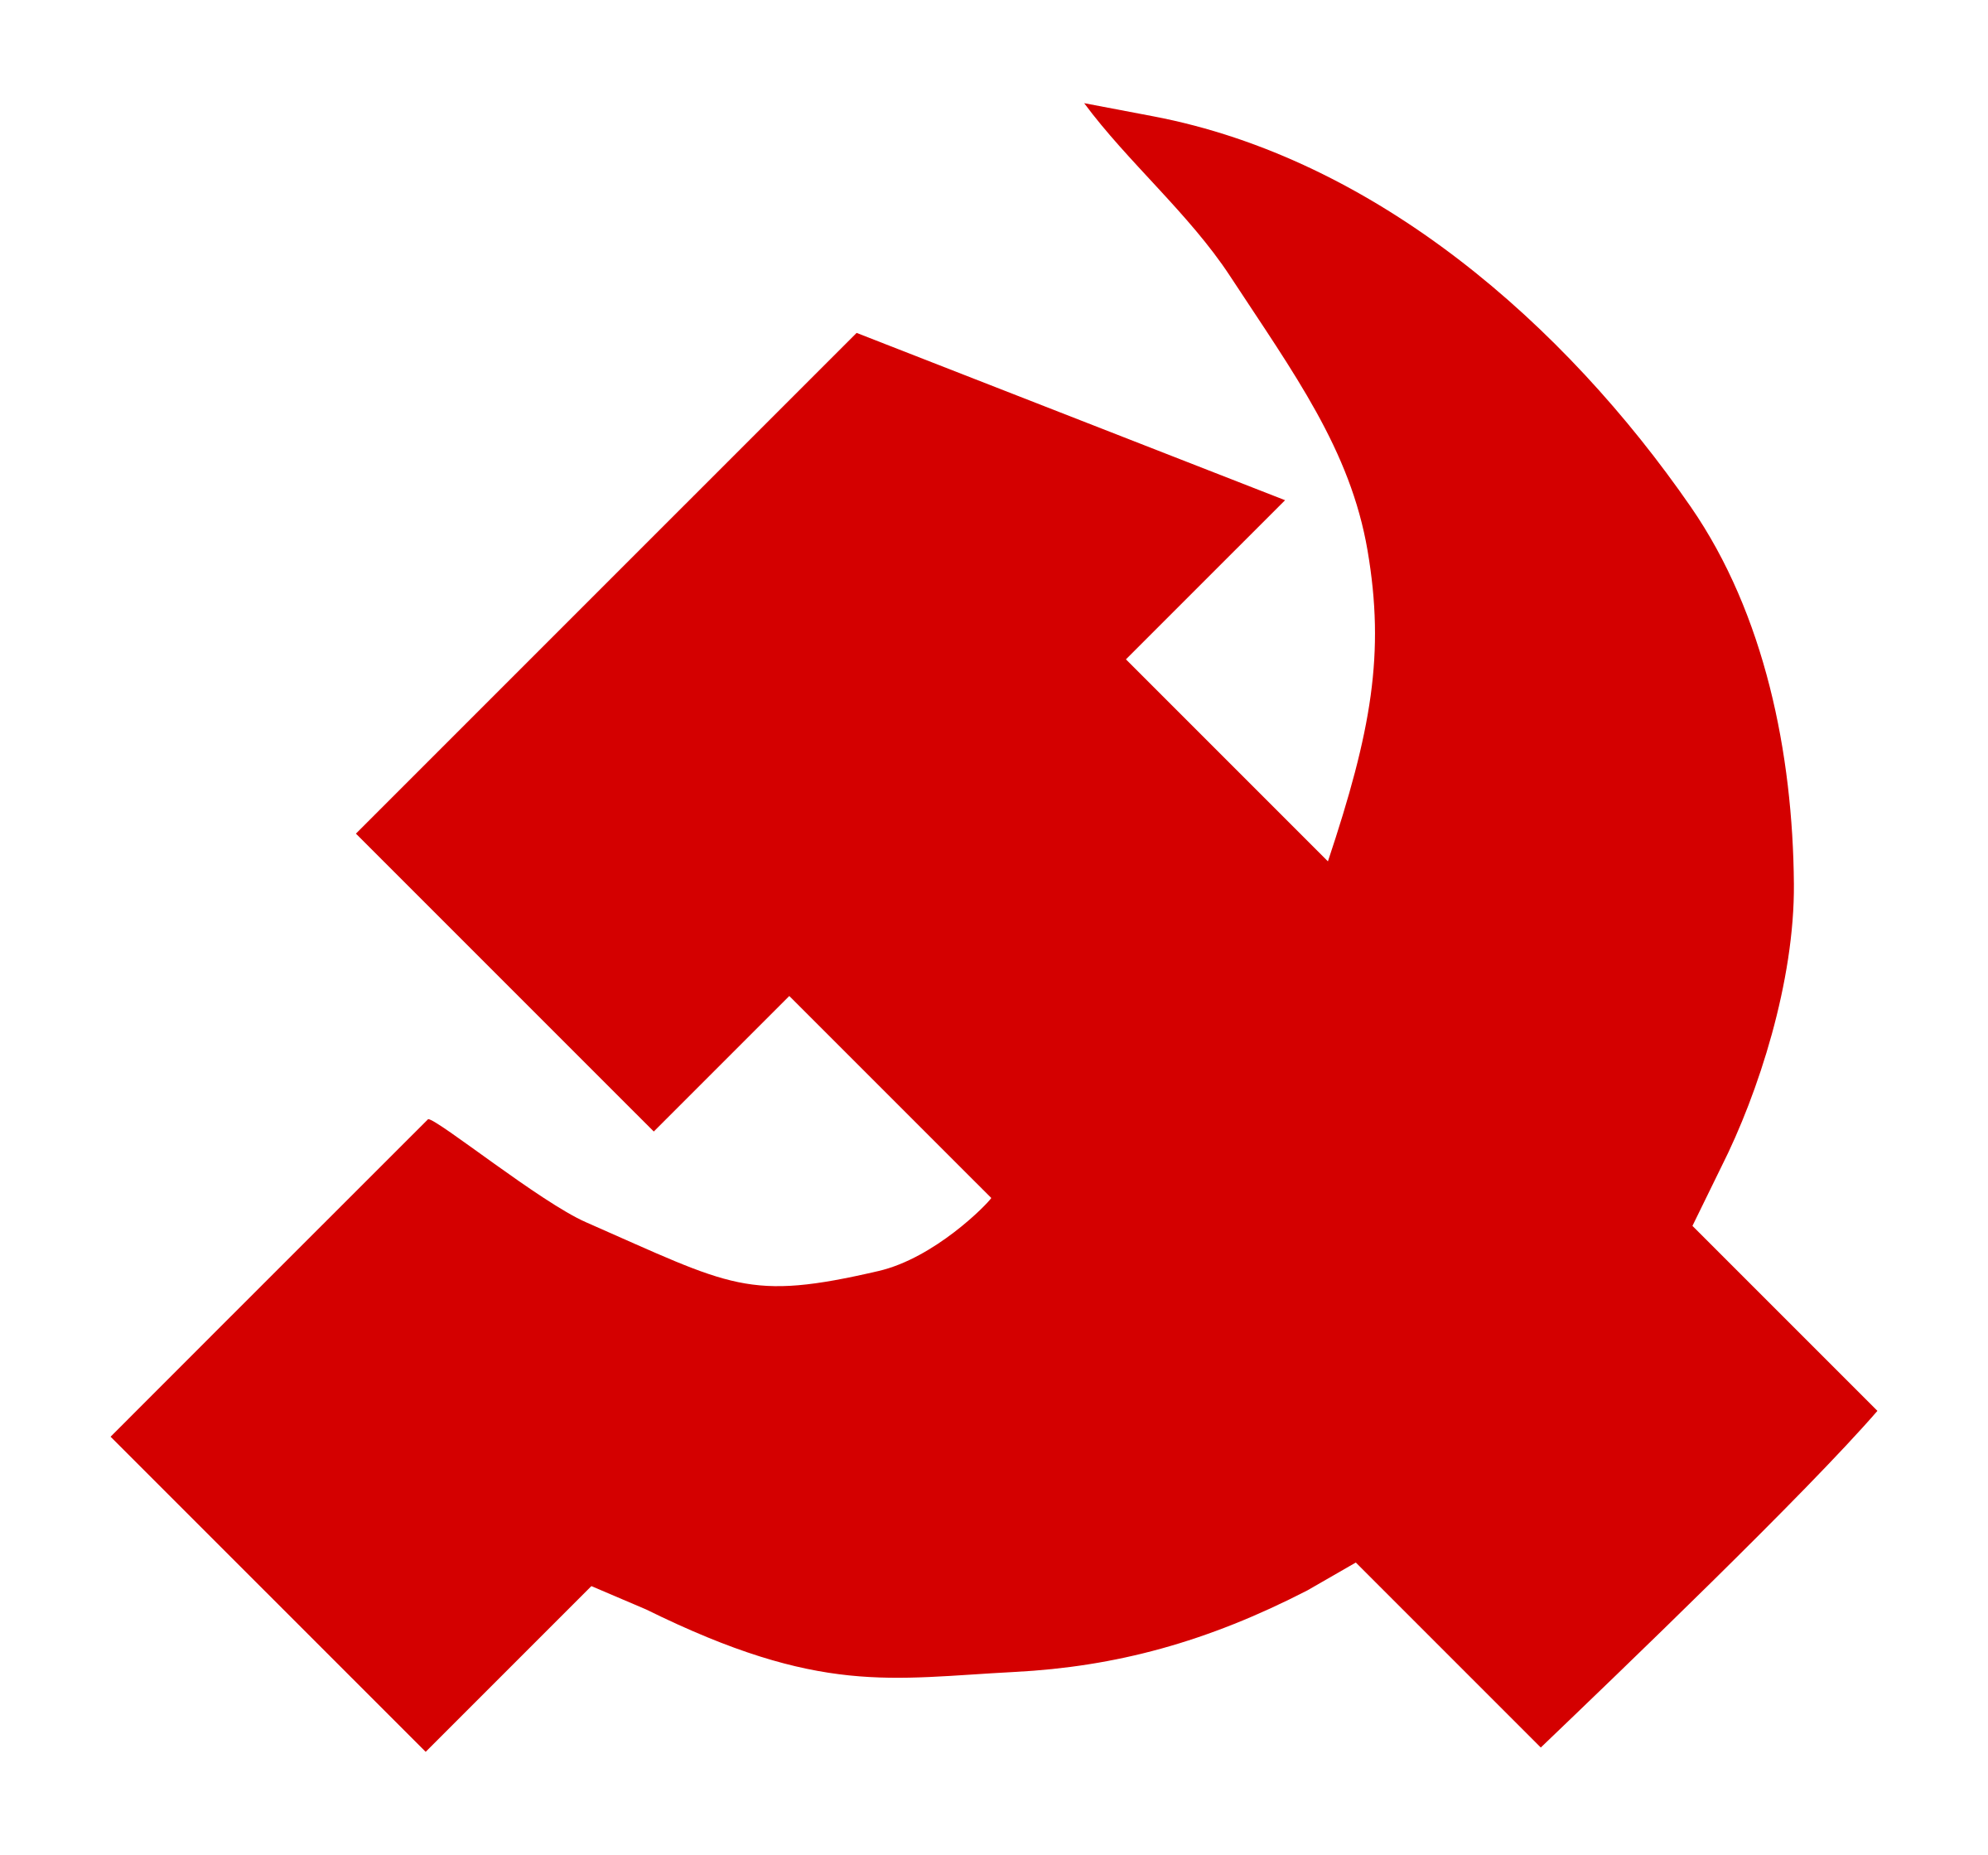 thick hammer and sickle by worker